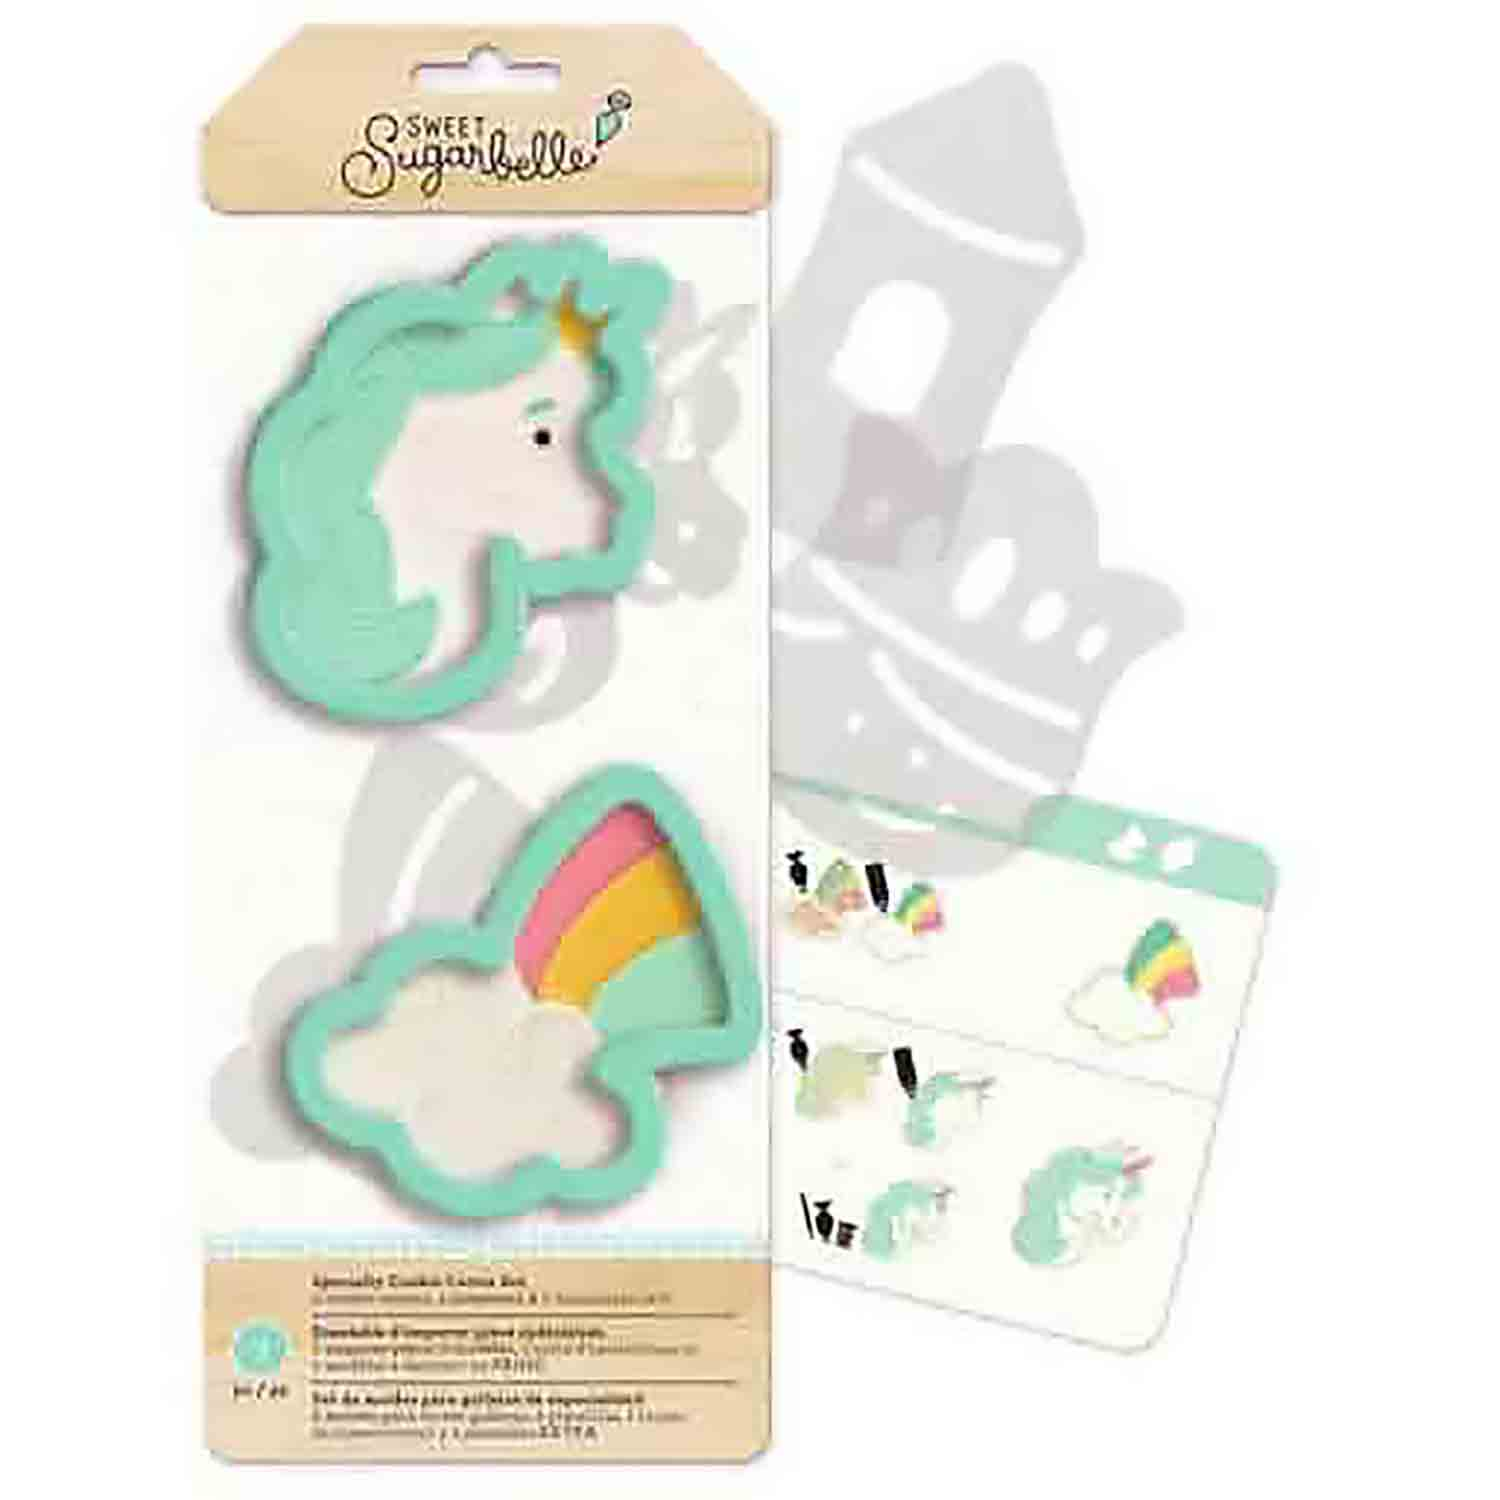 Enchanted Cookie Cutter Stencil Set